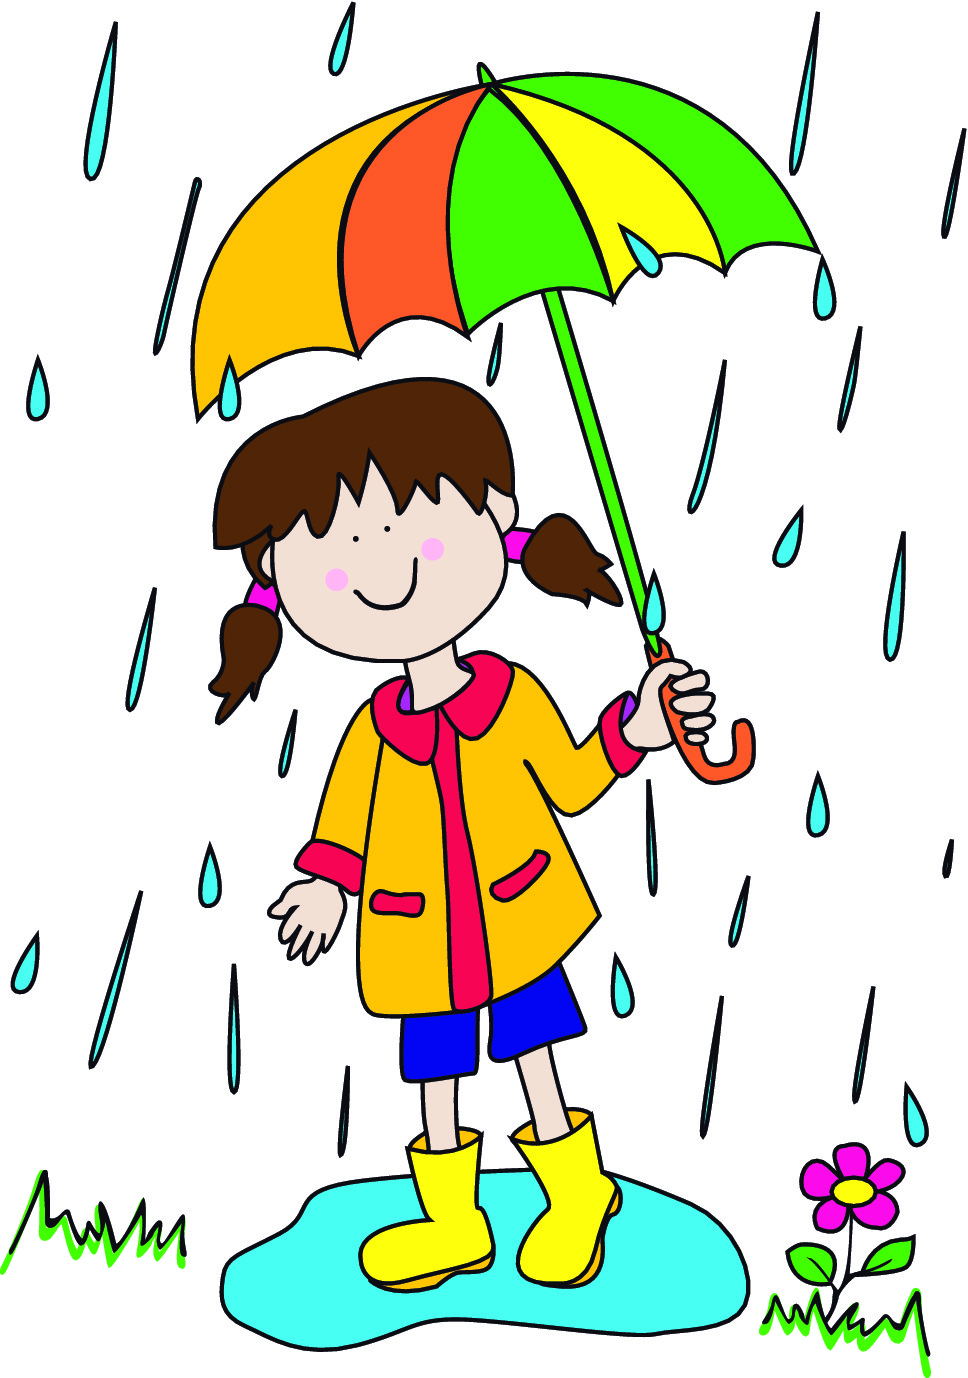 Little girl under her umbrella in the rain